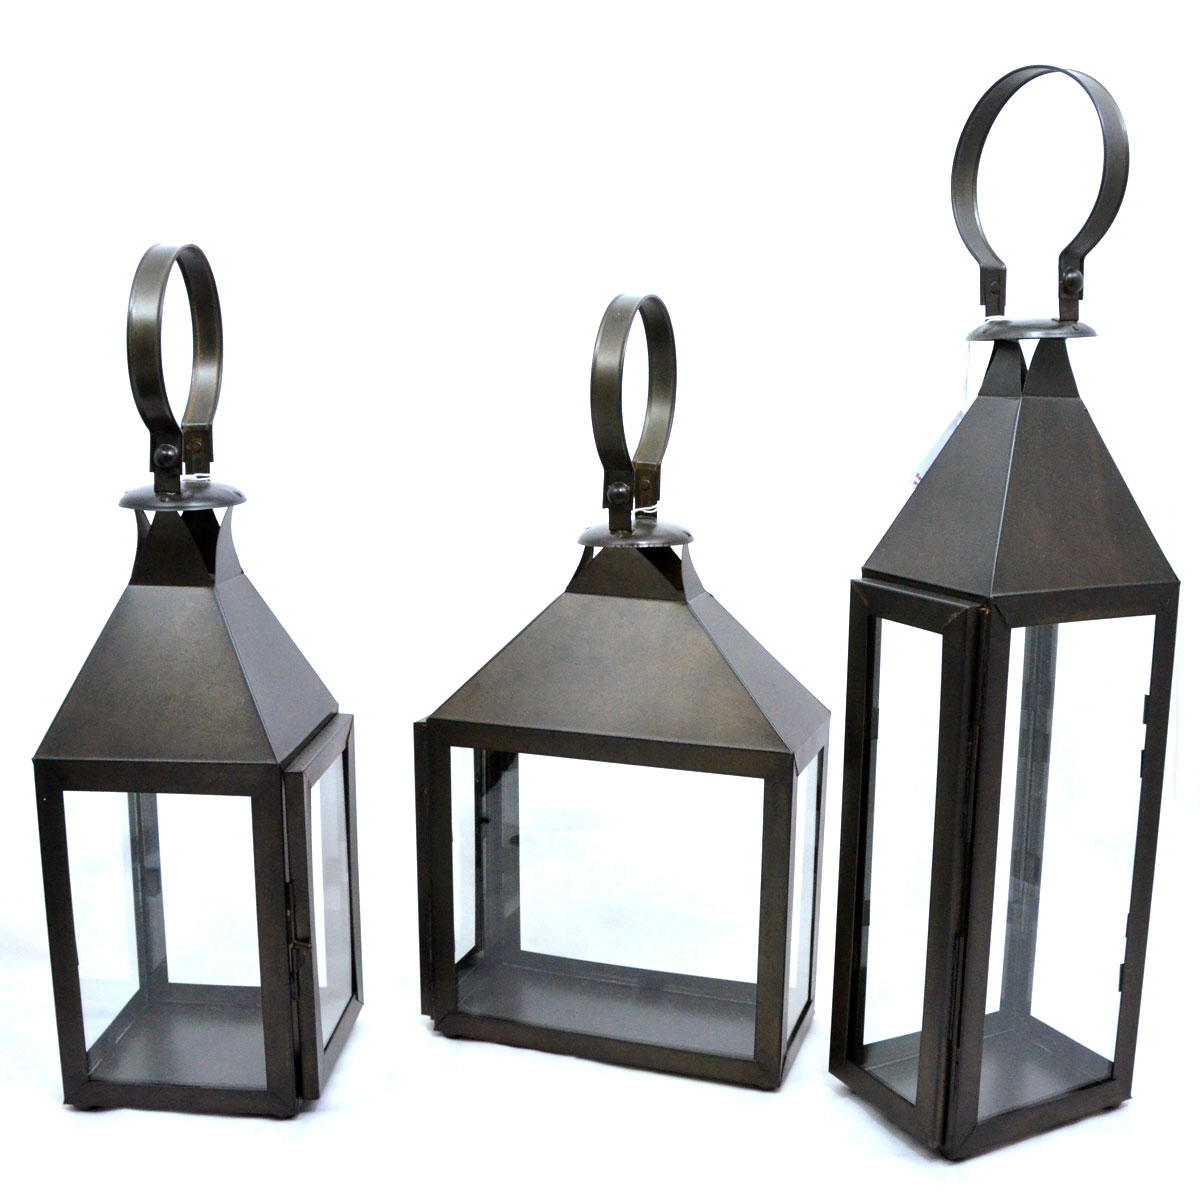 Paulo Cortes Higuera & Family: Tin Work Candle Lanterns